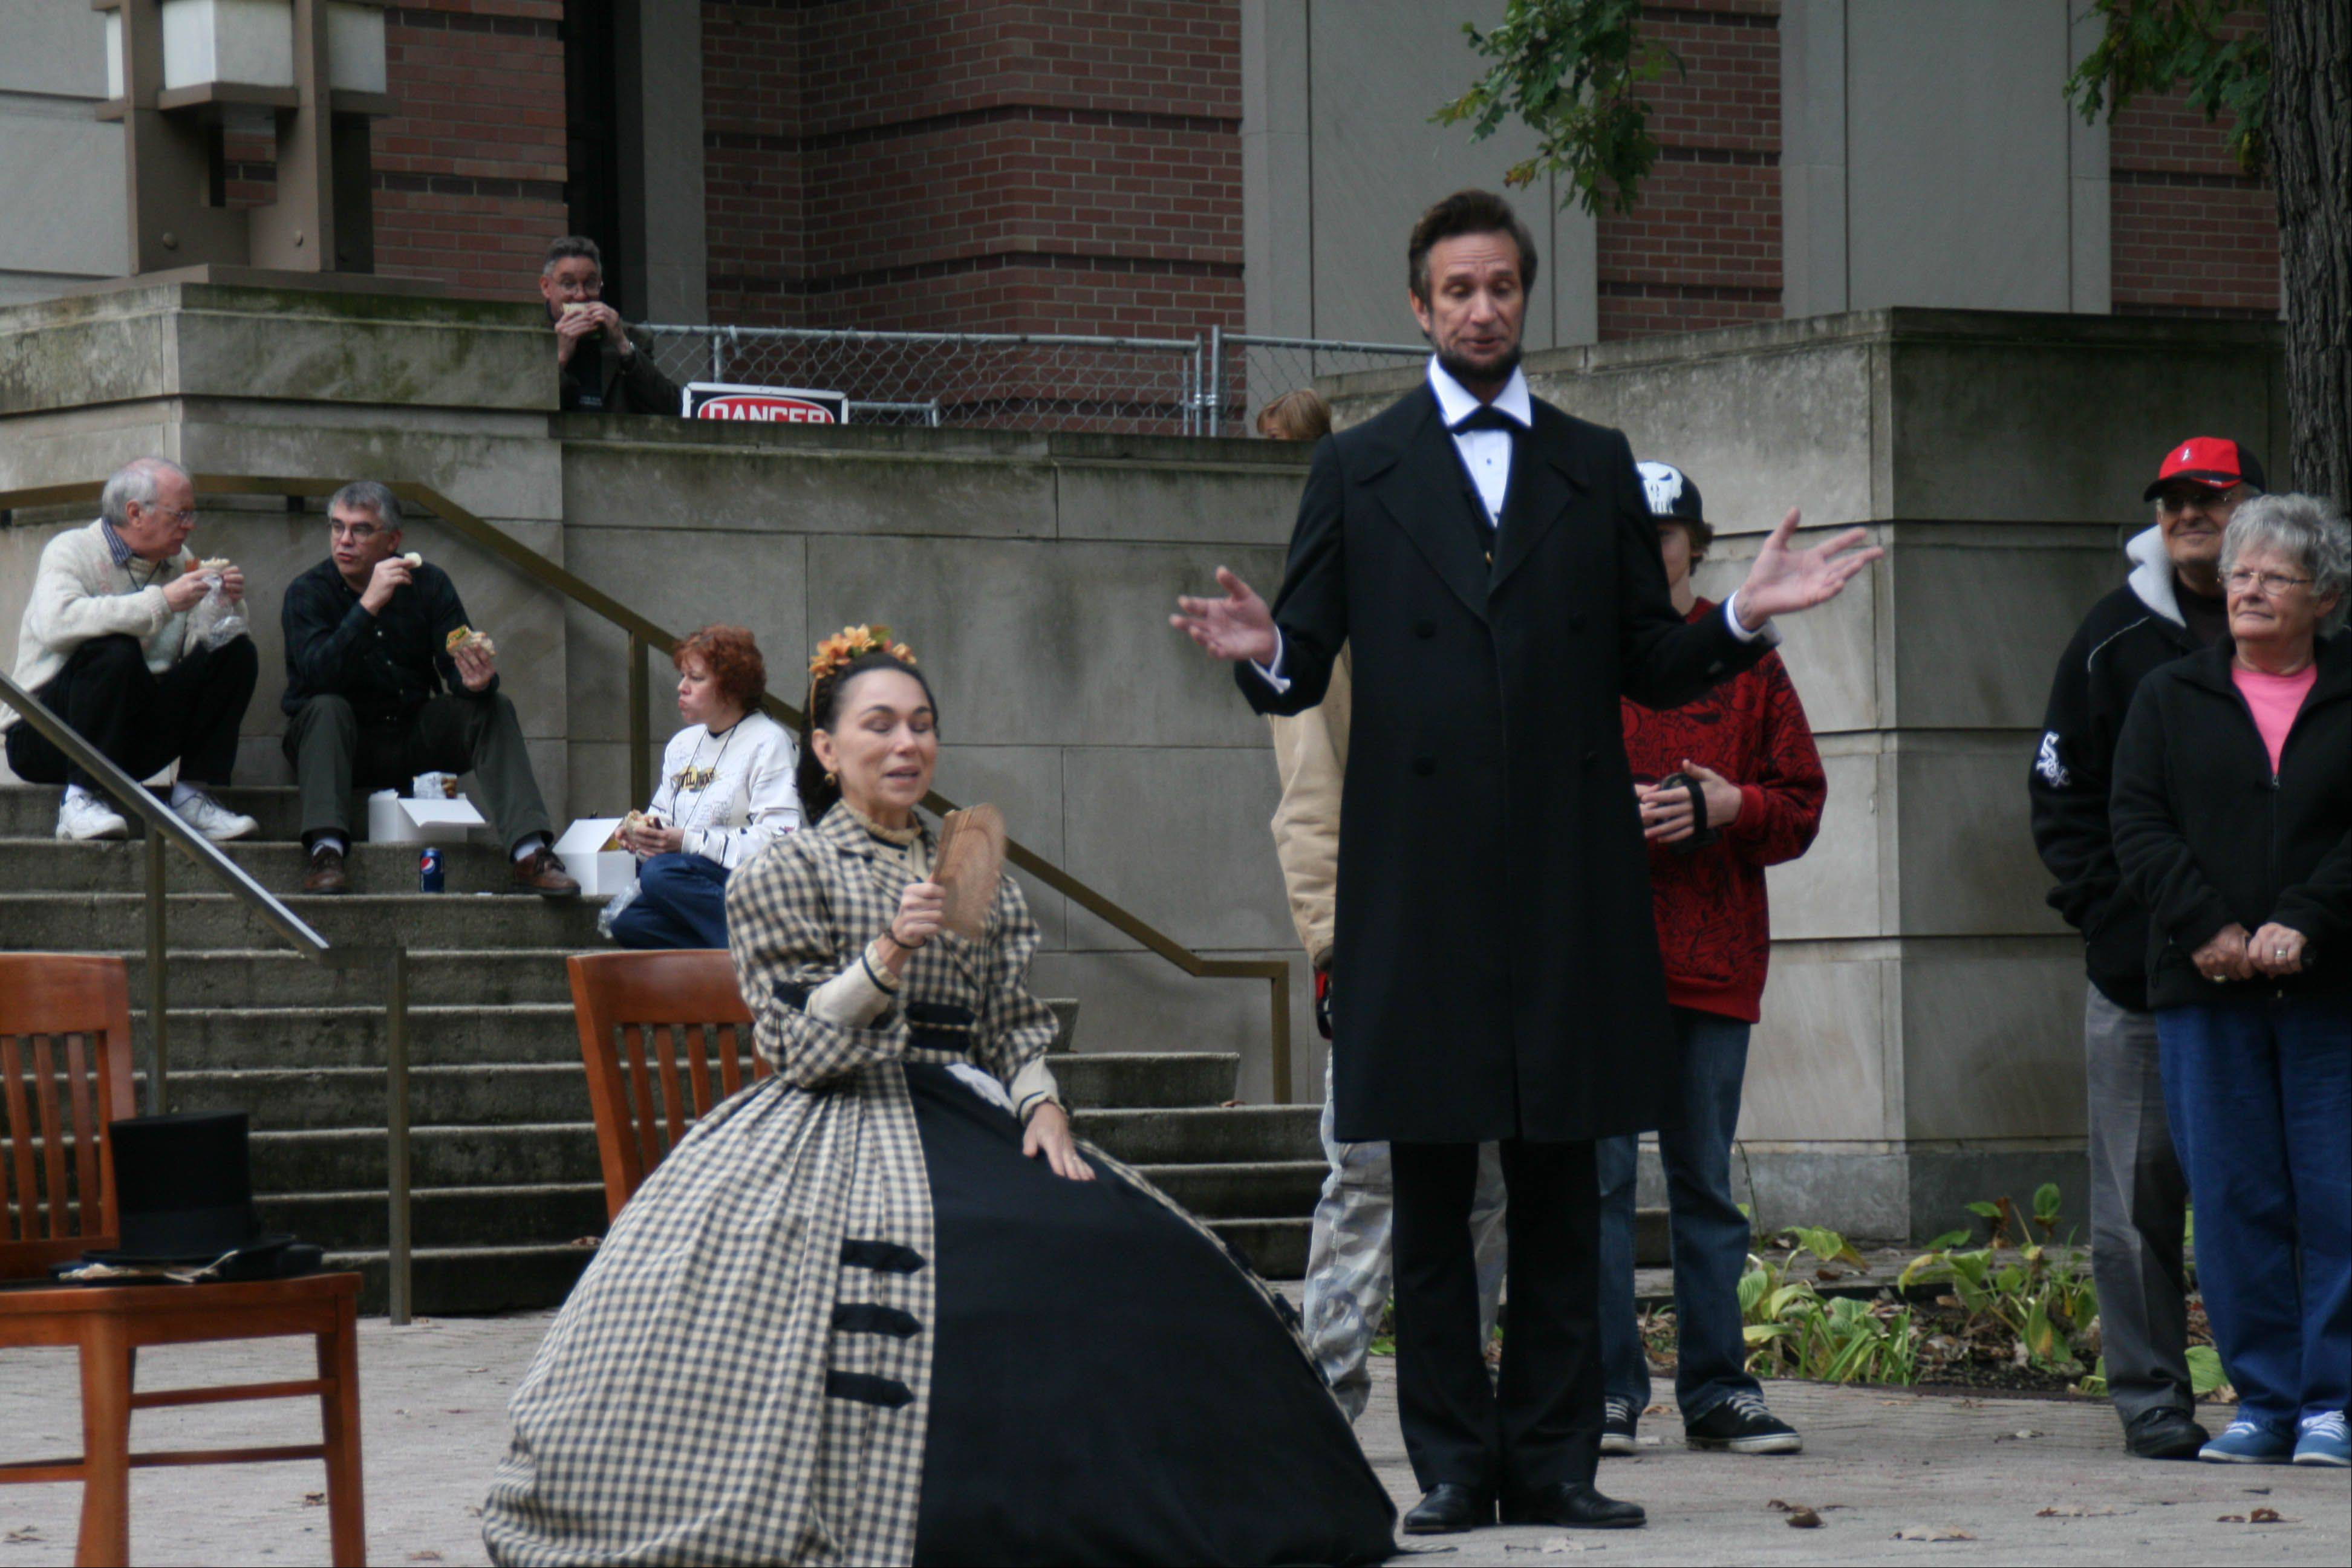 Two impersonators hold court at a past Civil War re-enactment at the First Division Museum. The event will take place this weekend during a Civil War Symposium at the museum in Wheaton.